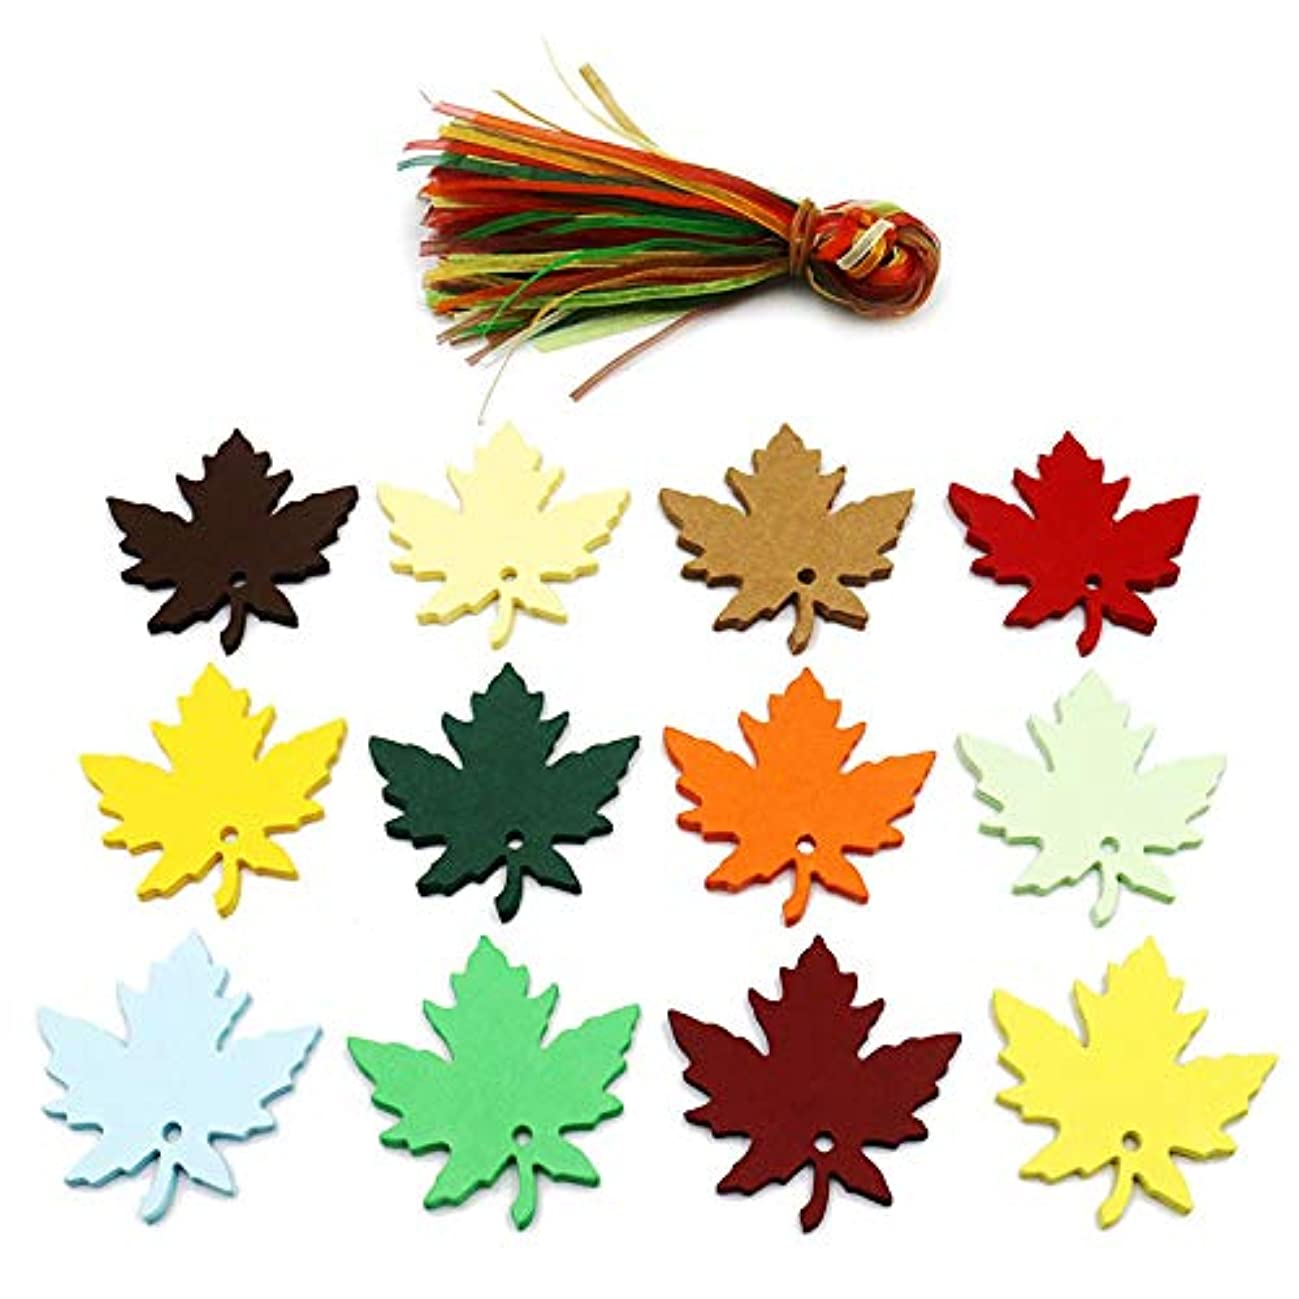 120 Pcs 12 Colors Maple Leaves Gift Tags with Strings Fall Wedding Party Favors Tags